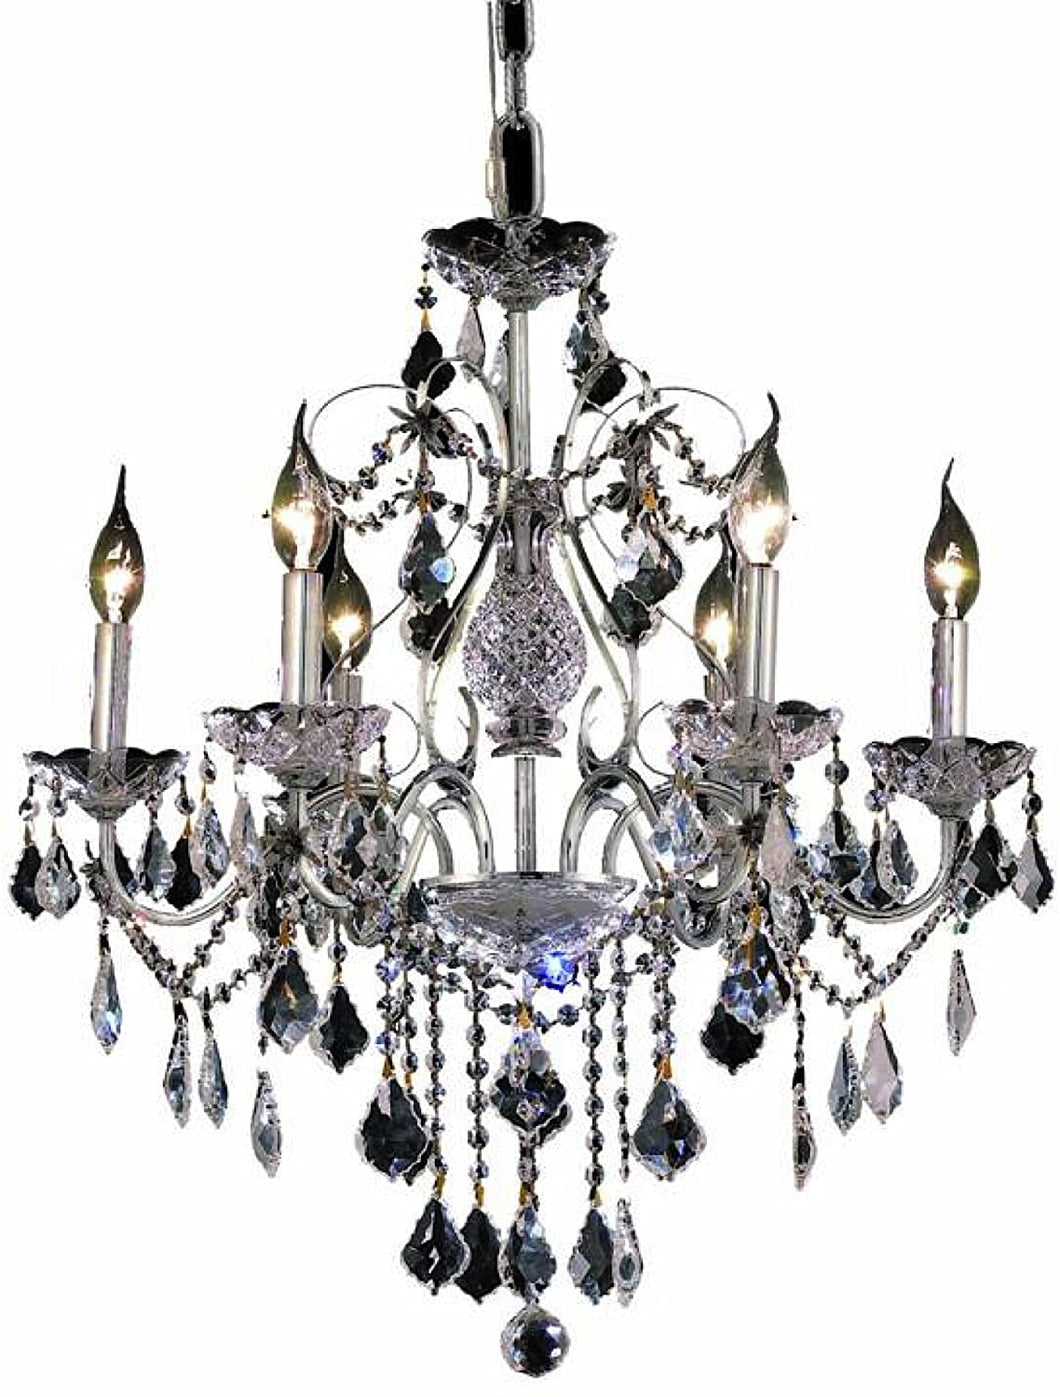 21 Inch Chandelier Chrome with Crystal - LV LIGHTING